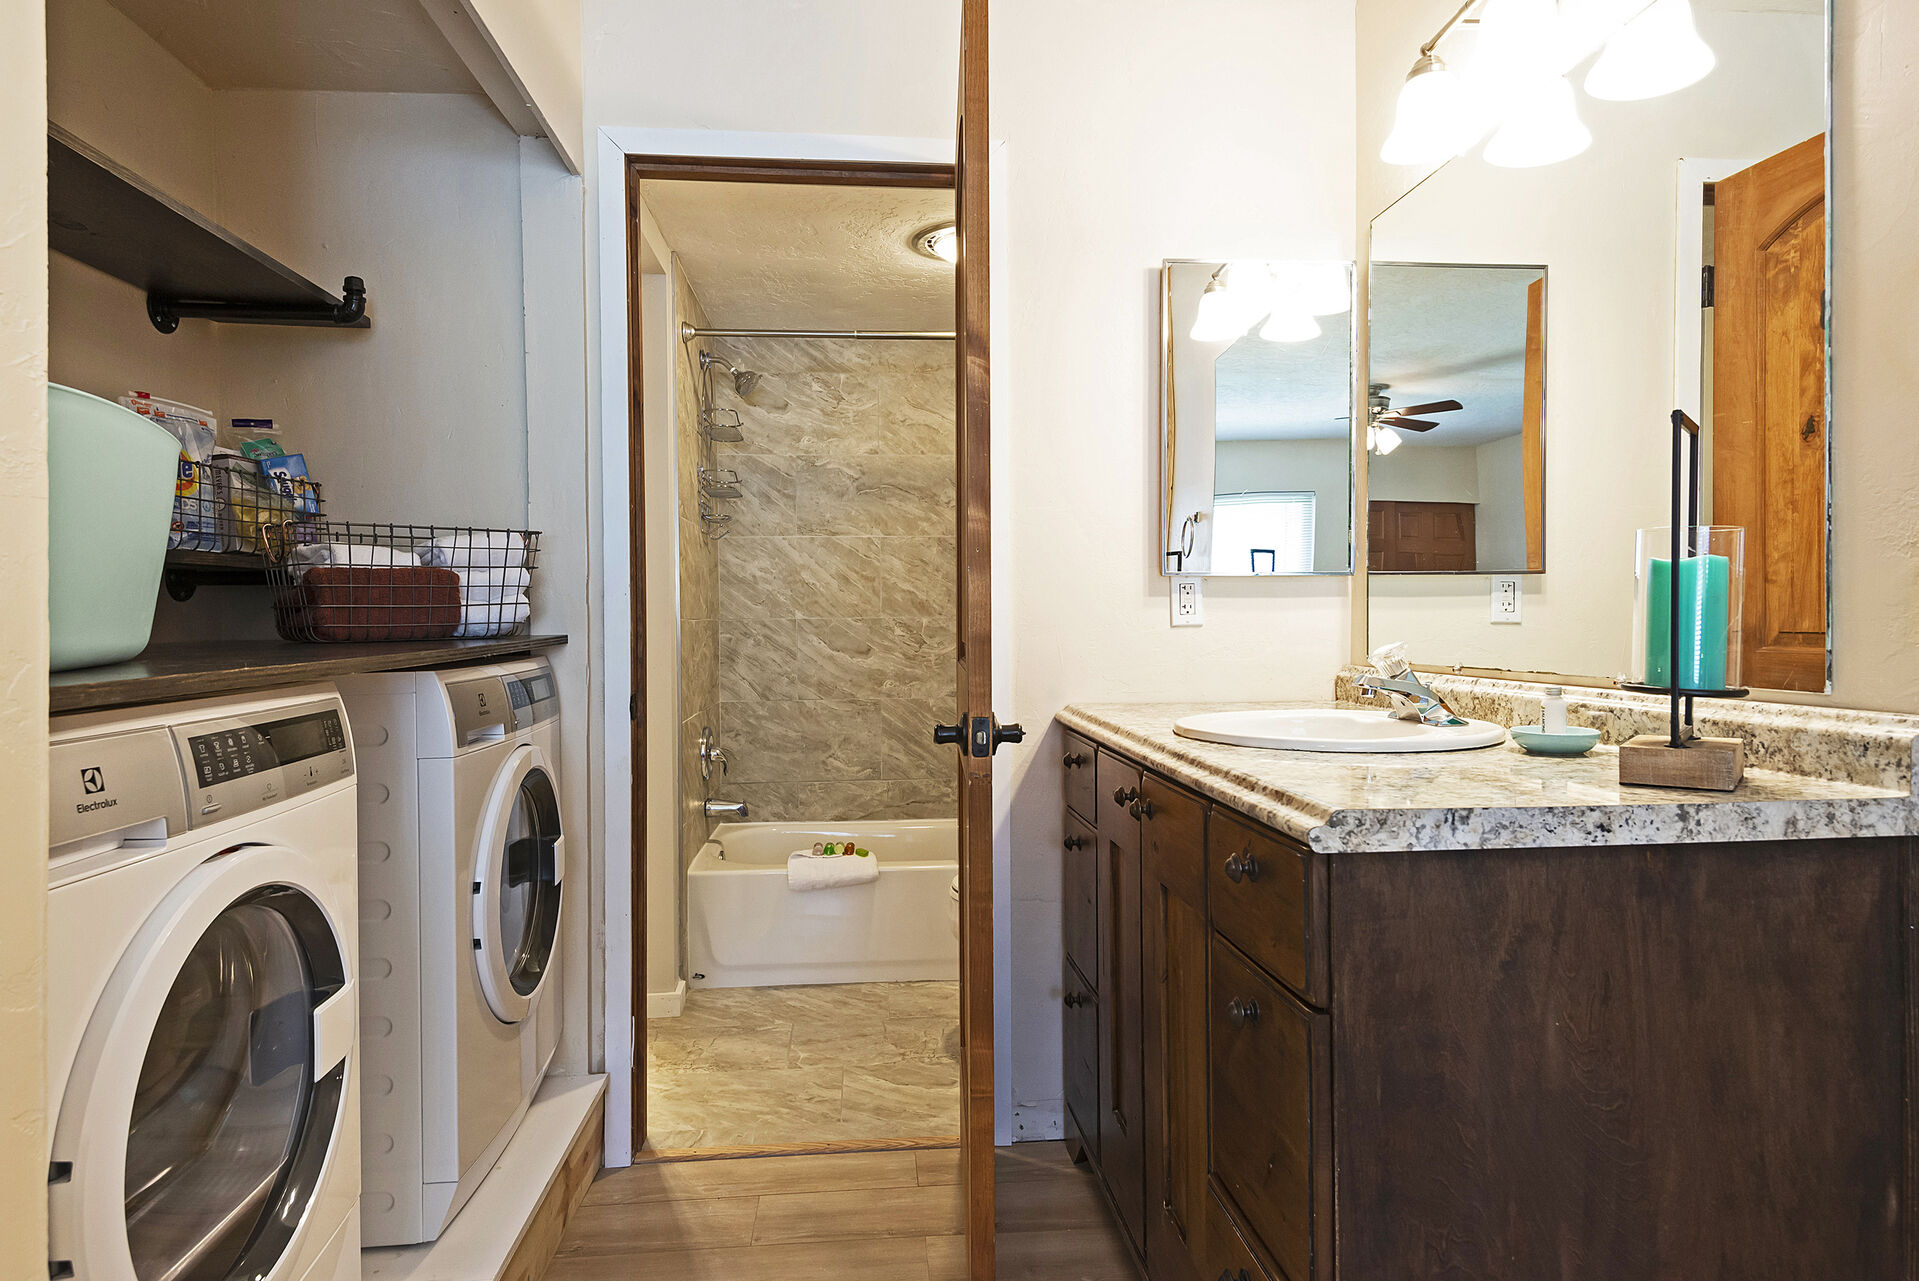 Washer / Dryer, Personal Vanity and Access to Shared Tub/Shower Combo